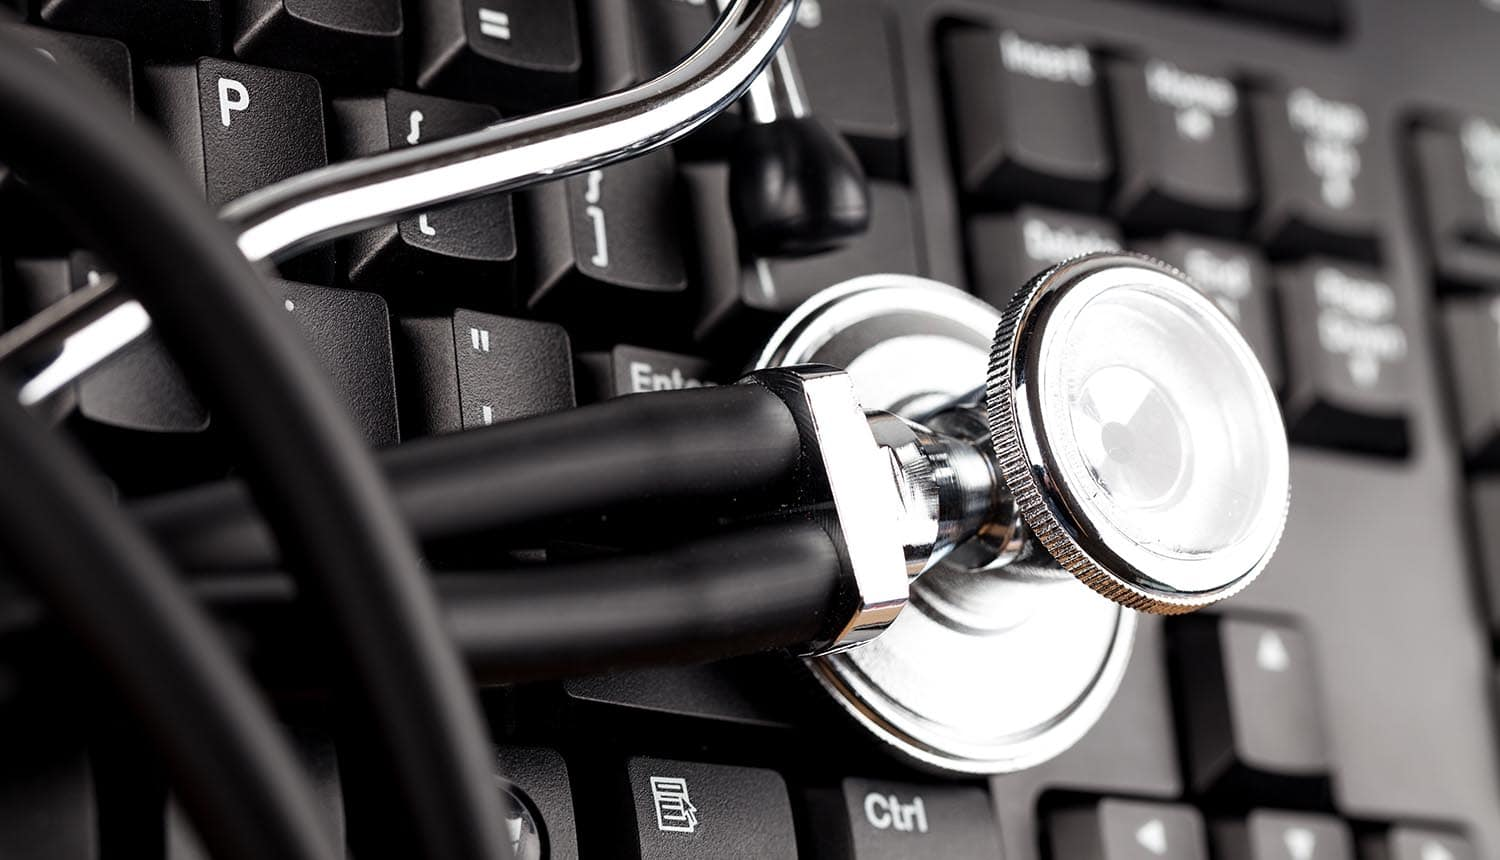 Stethoscope on laptop showing ransomware attack impacting clinical trials